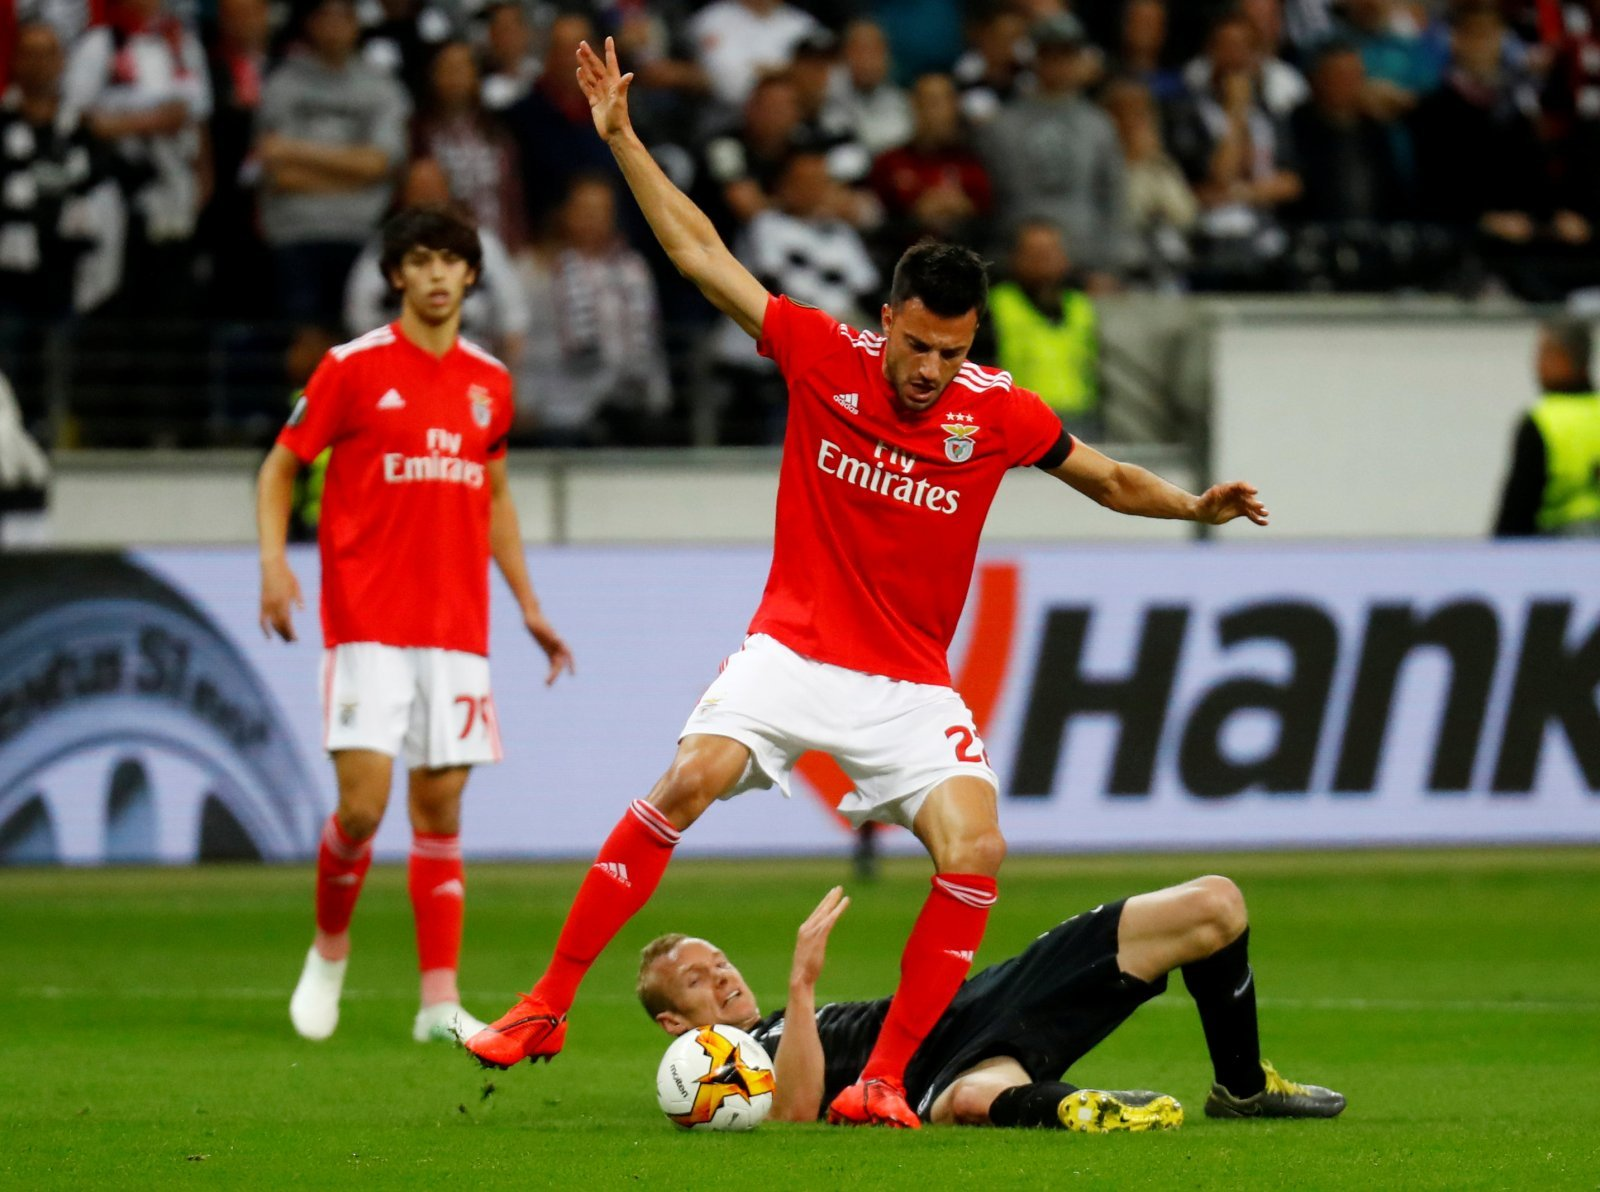 Potential Consequences: Newcastle sign Andreas Samaris